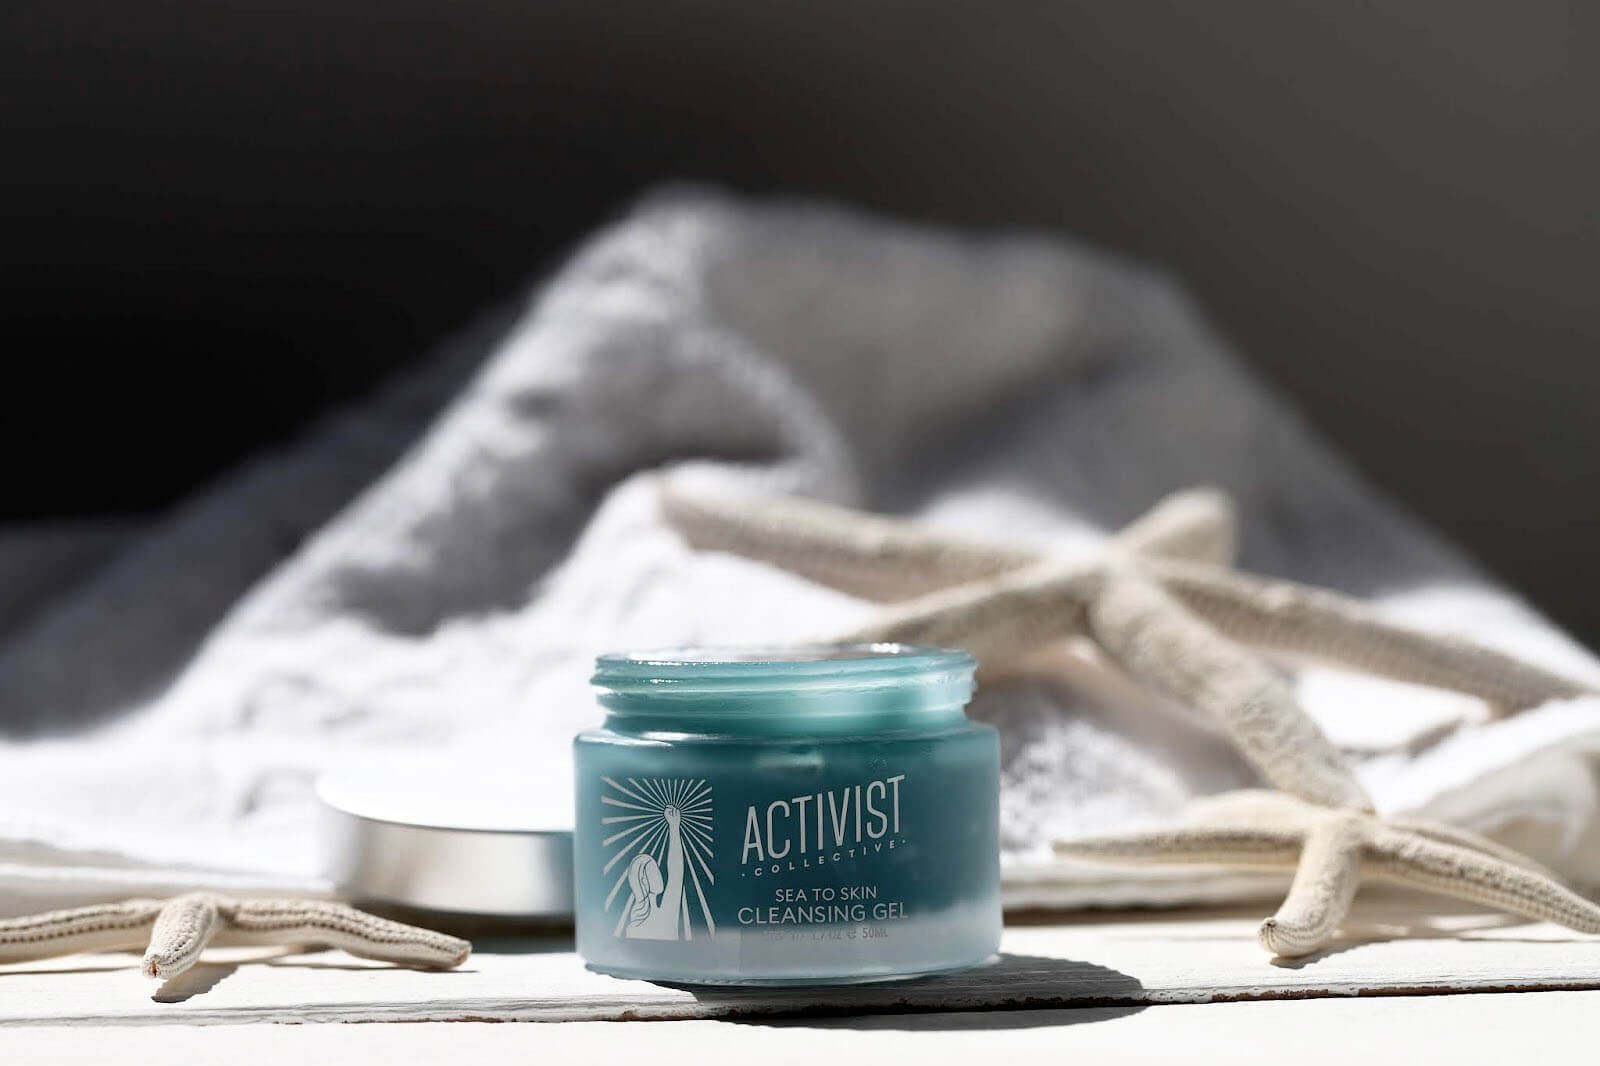 Activist Cleansing Gel Baume Démaquillant test